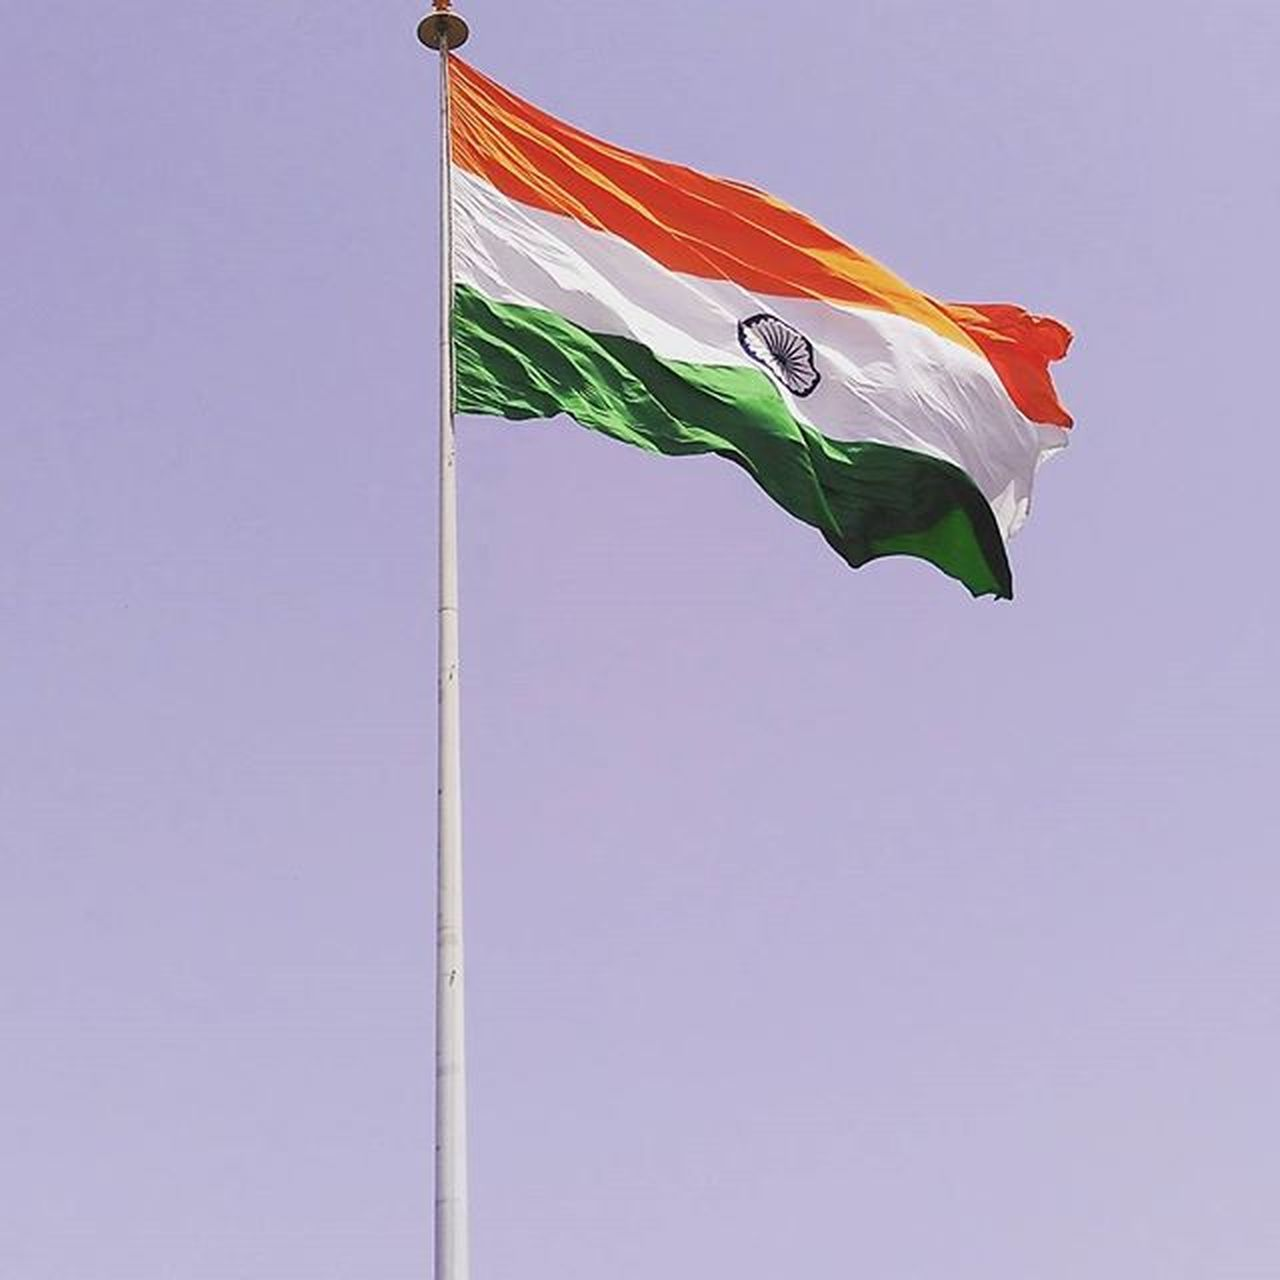 Republic Day of India. The day thathonours the date on which the Constitution of India came into force on 26 January 1950 after a long fight of freedom from the British empire. Respect to the souls who fought from the British to make this day possible. Freedom Freeindia Republicday India Proudtobeindian Respect